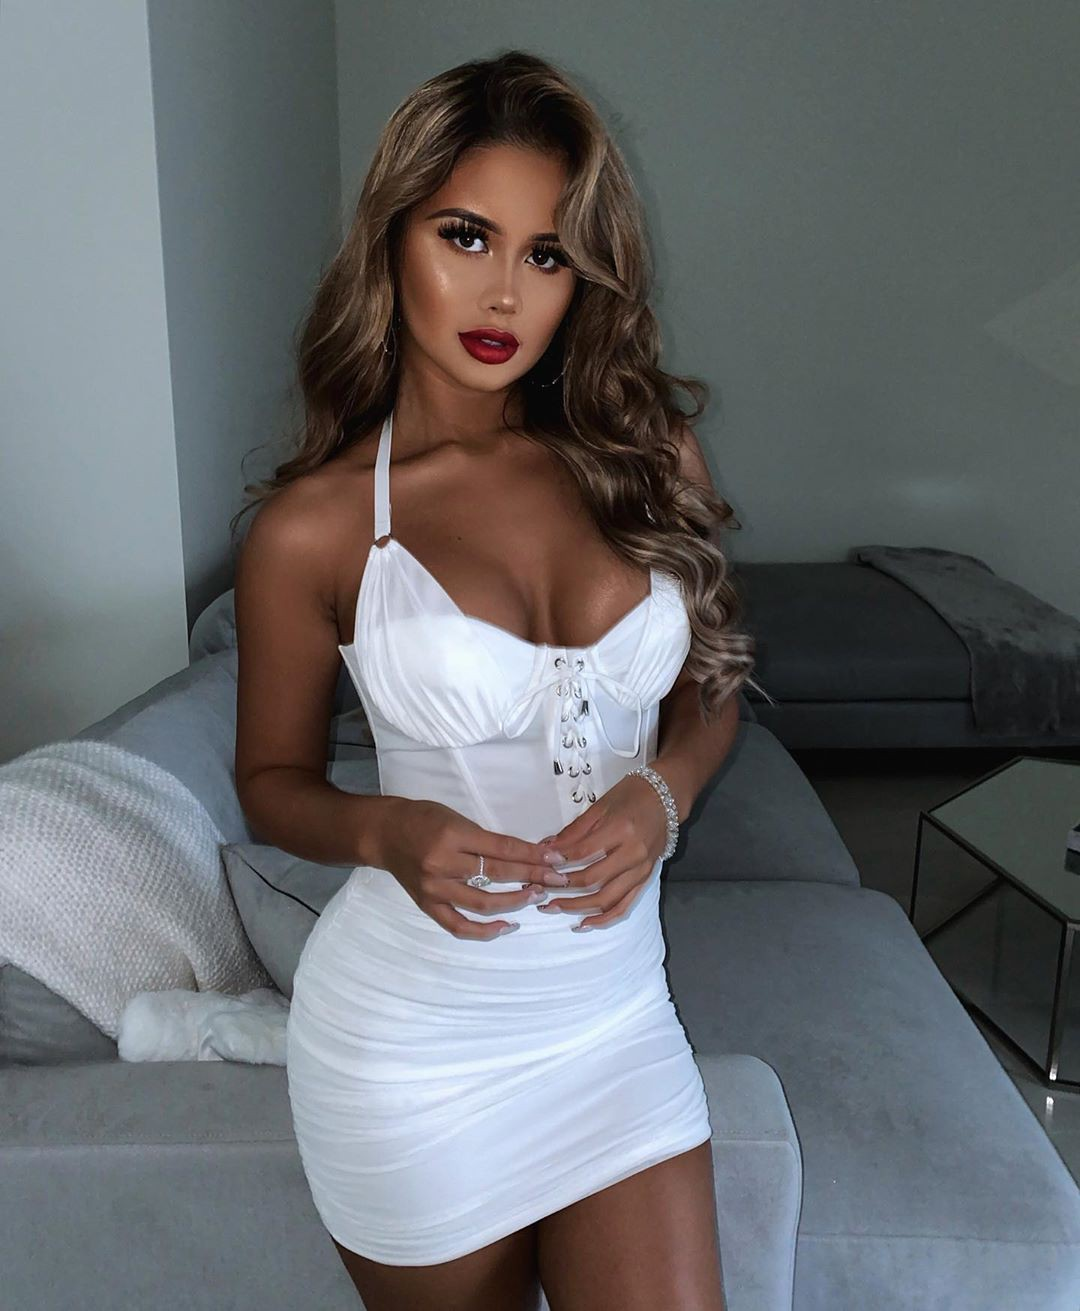 white outfits for women with undergarment, lingerie, woman thighs